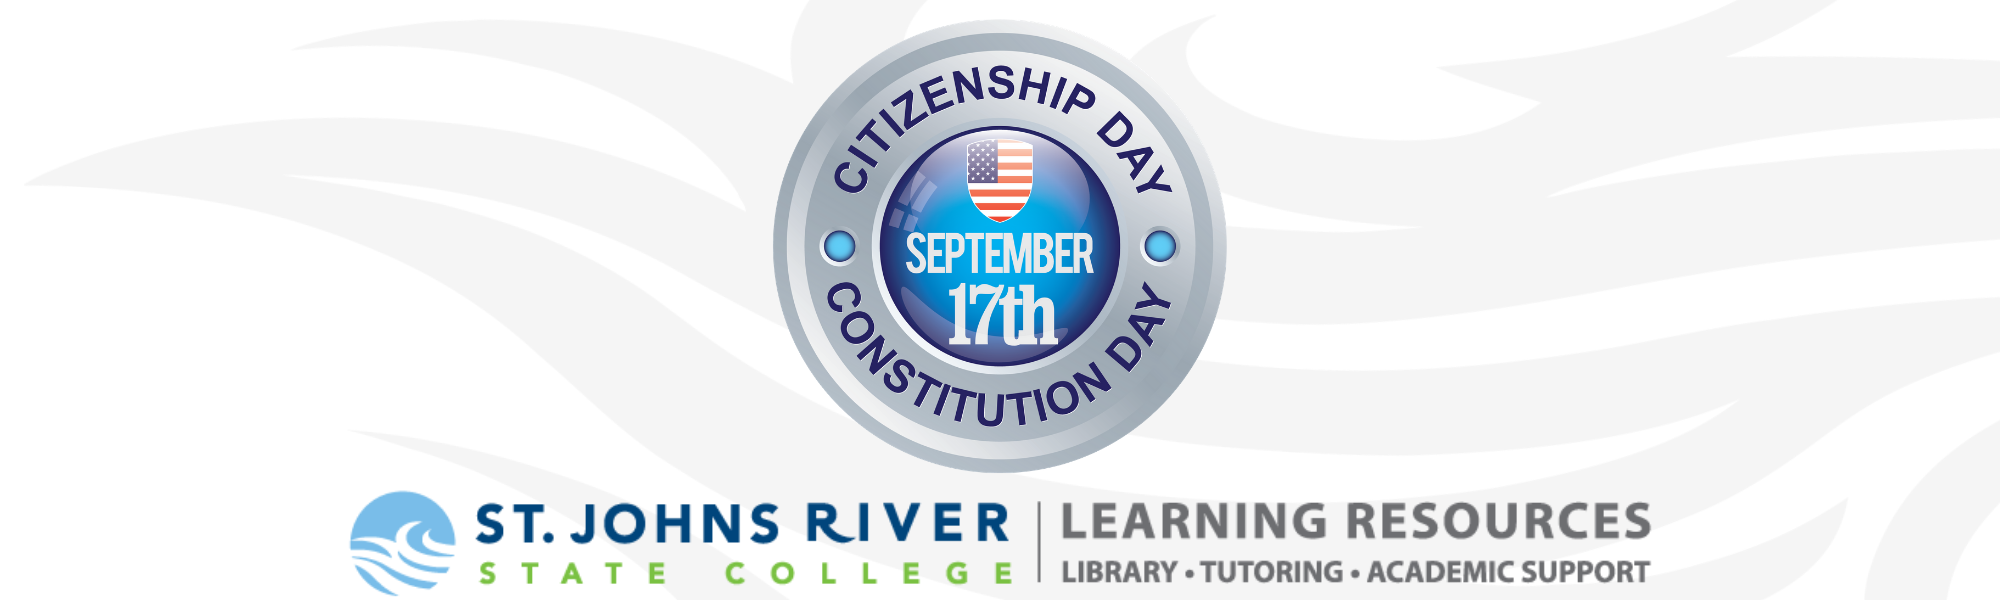 Sept. 17 is Citizenship and Constitution Day